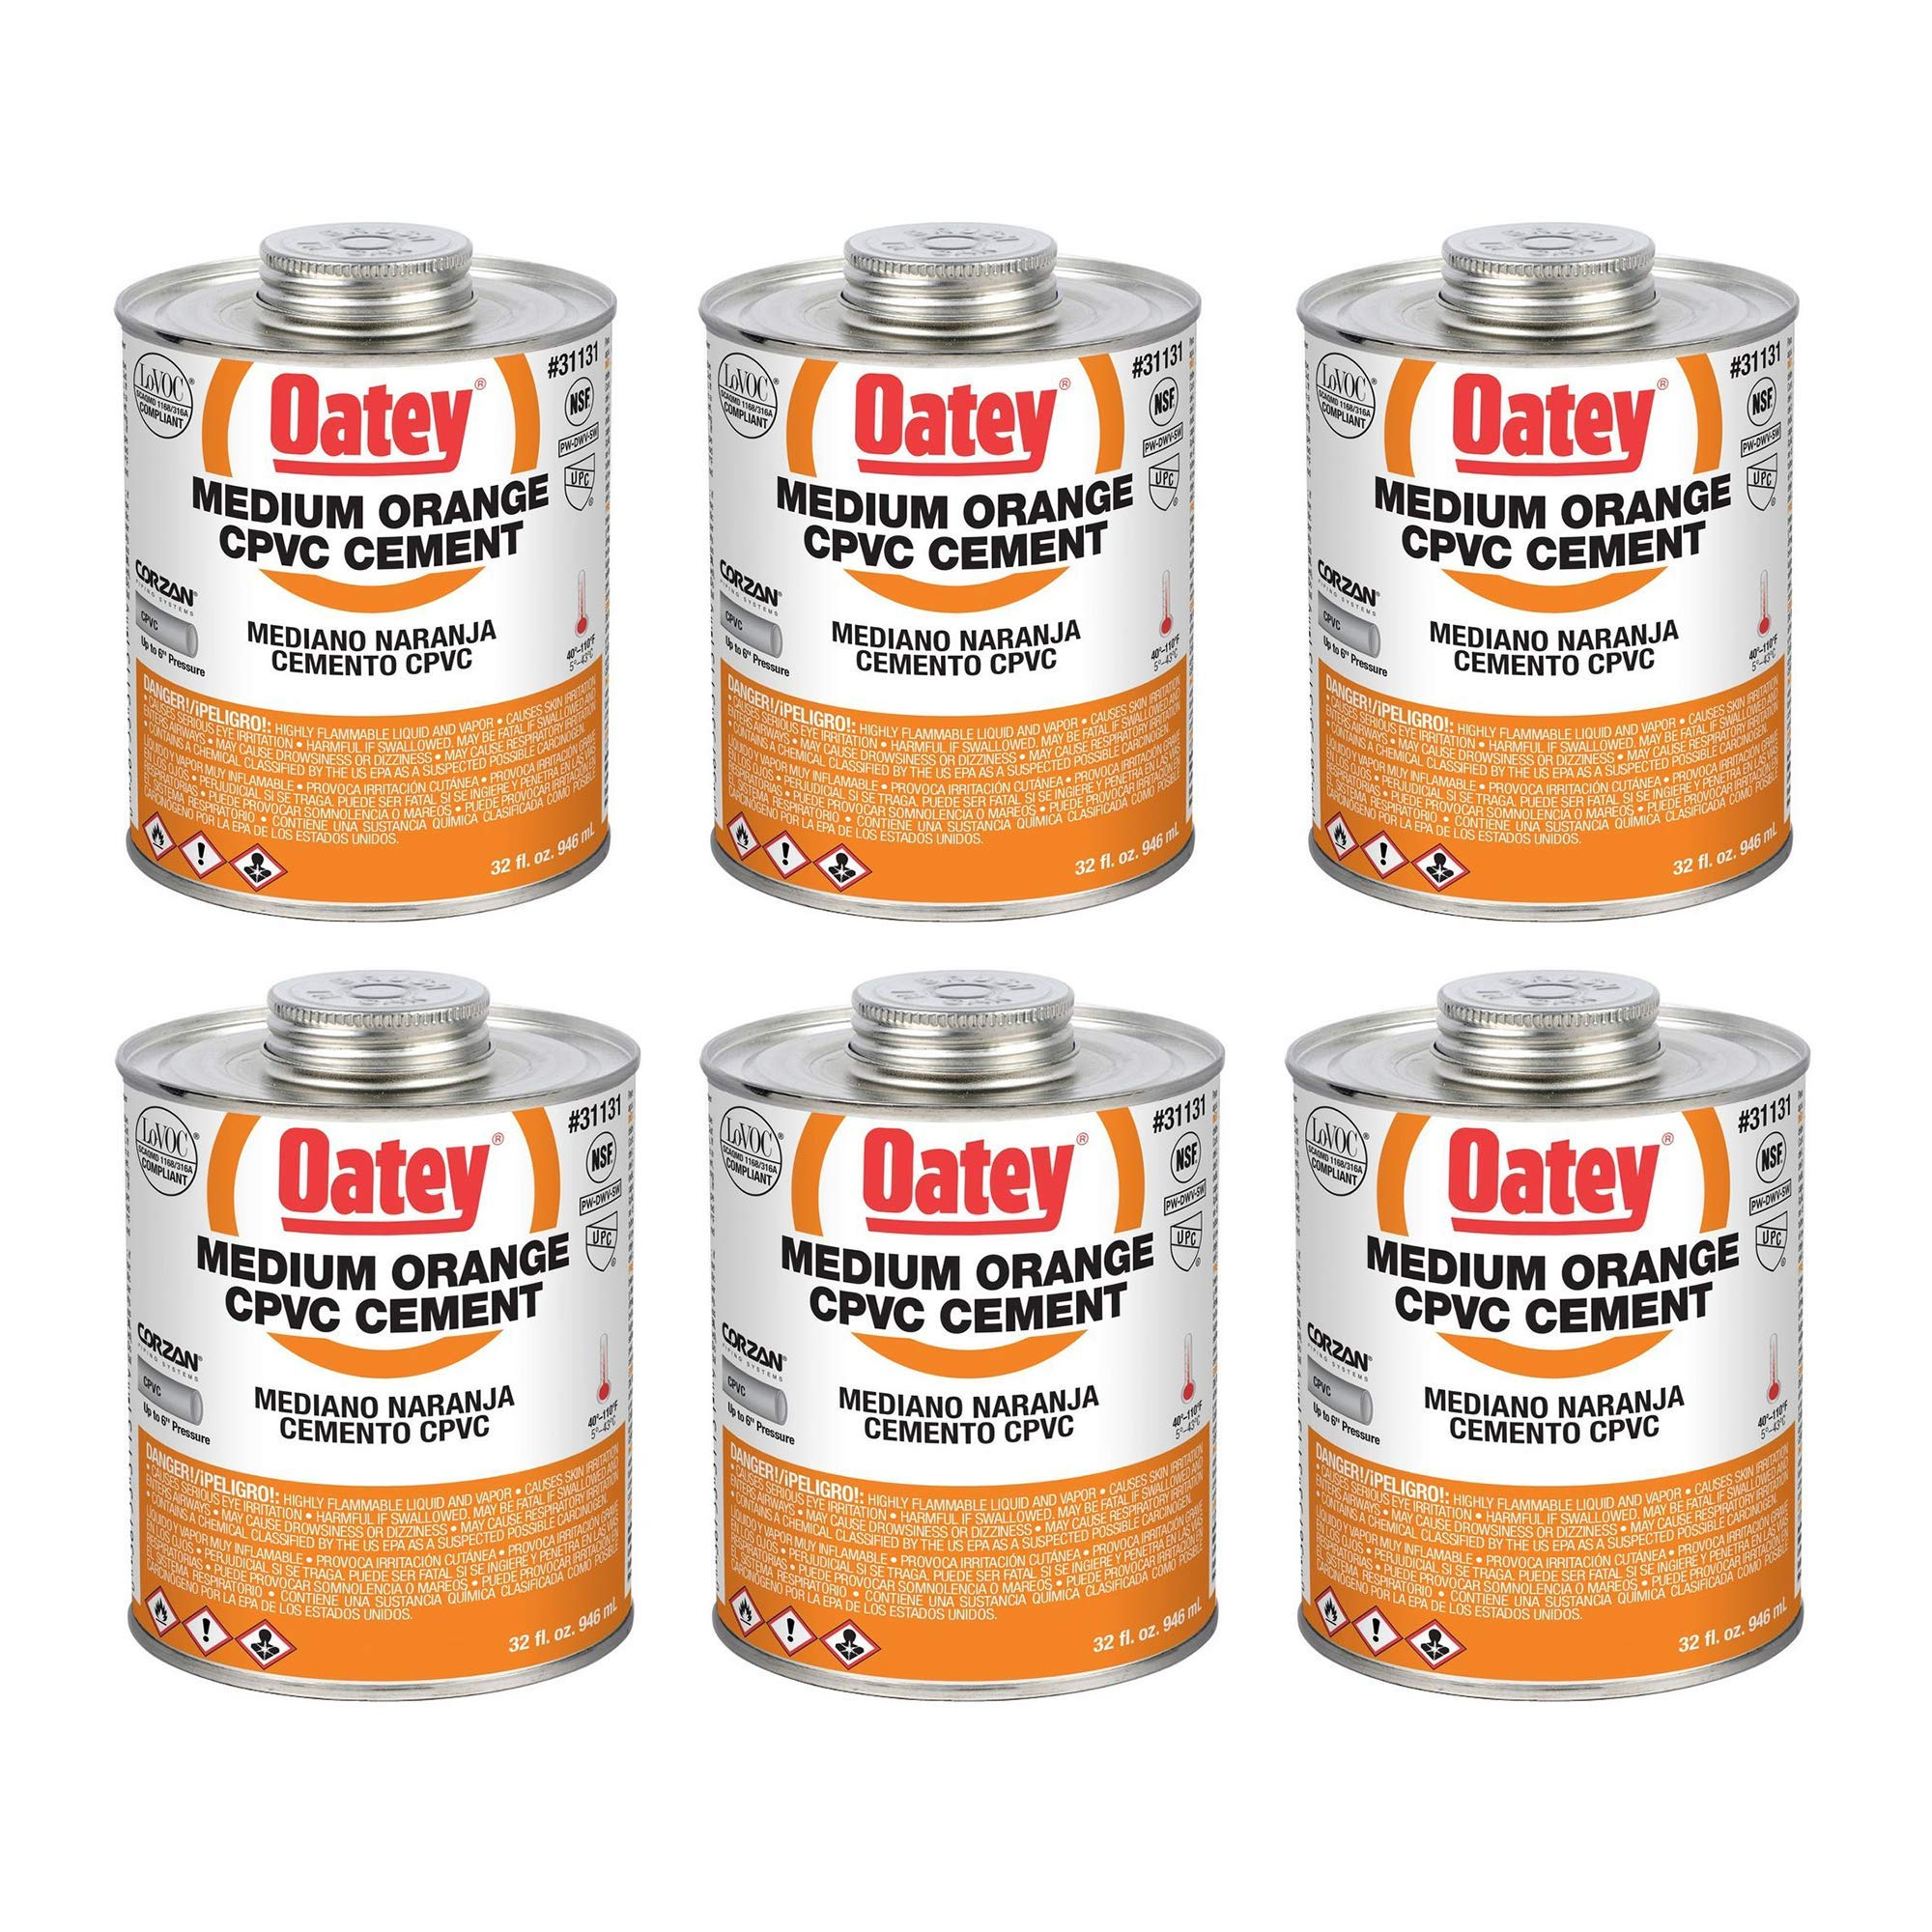 Oatey 31131 32 Oz. CPVC Pipe Hot and Cold Systems Solvent Cement Glue, Orange (6 Pack) by Oatey (Image #1)